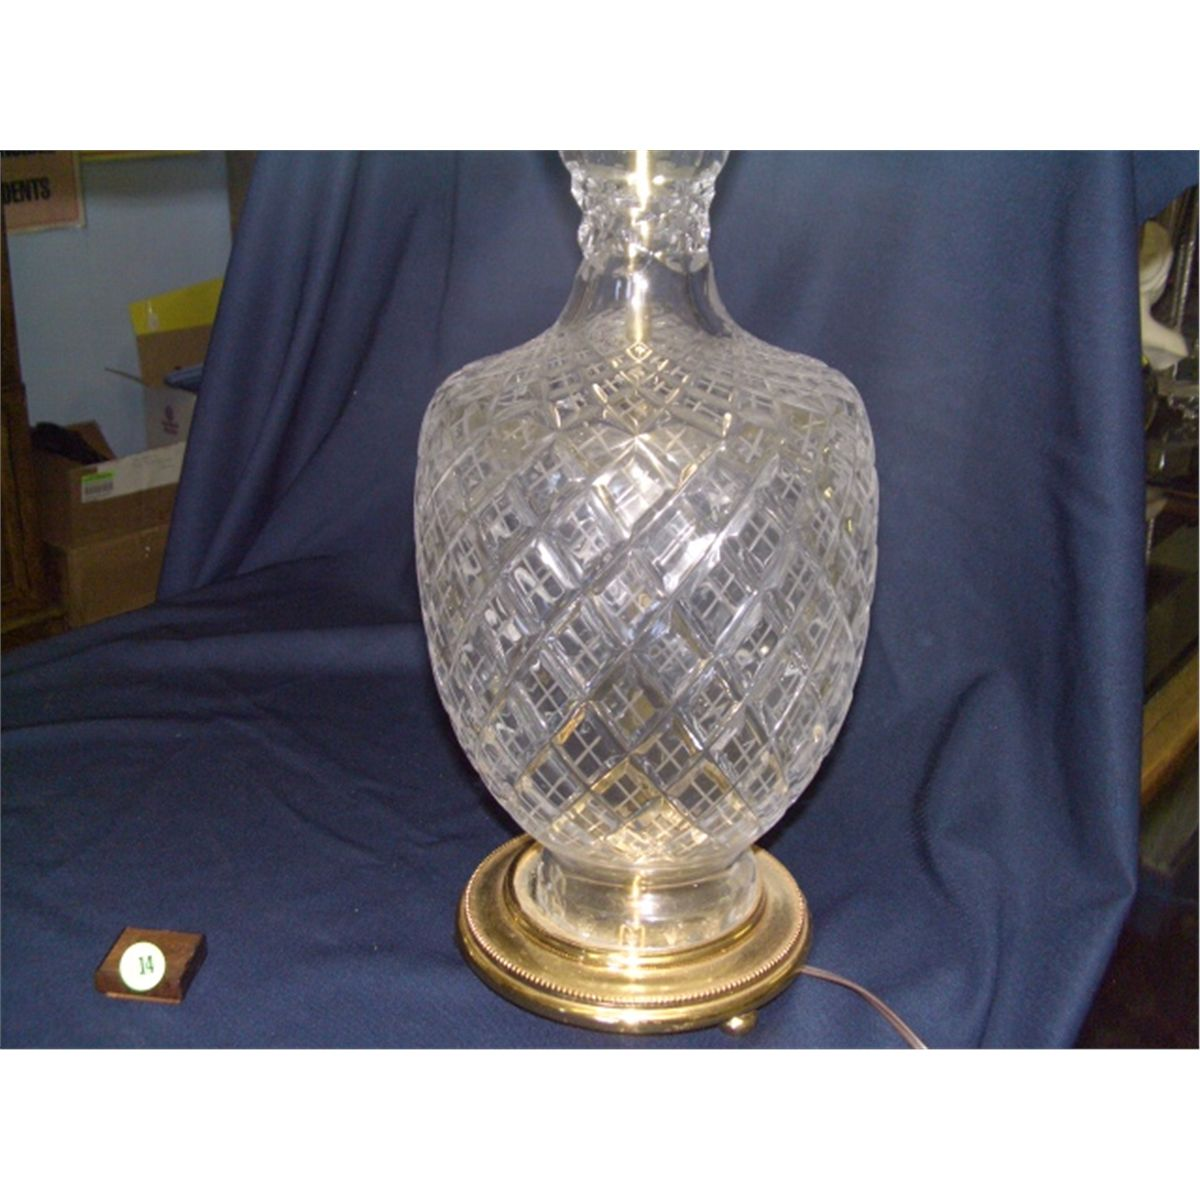 2 piece matching cut crystal glass table lamps waterford no marks 2 piece matching cut crystal glass table lamps waterford no marks found 29 geotapseo Images